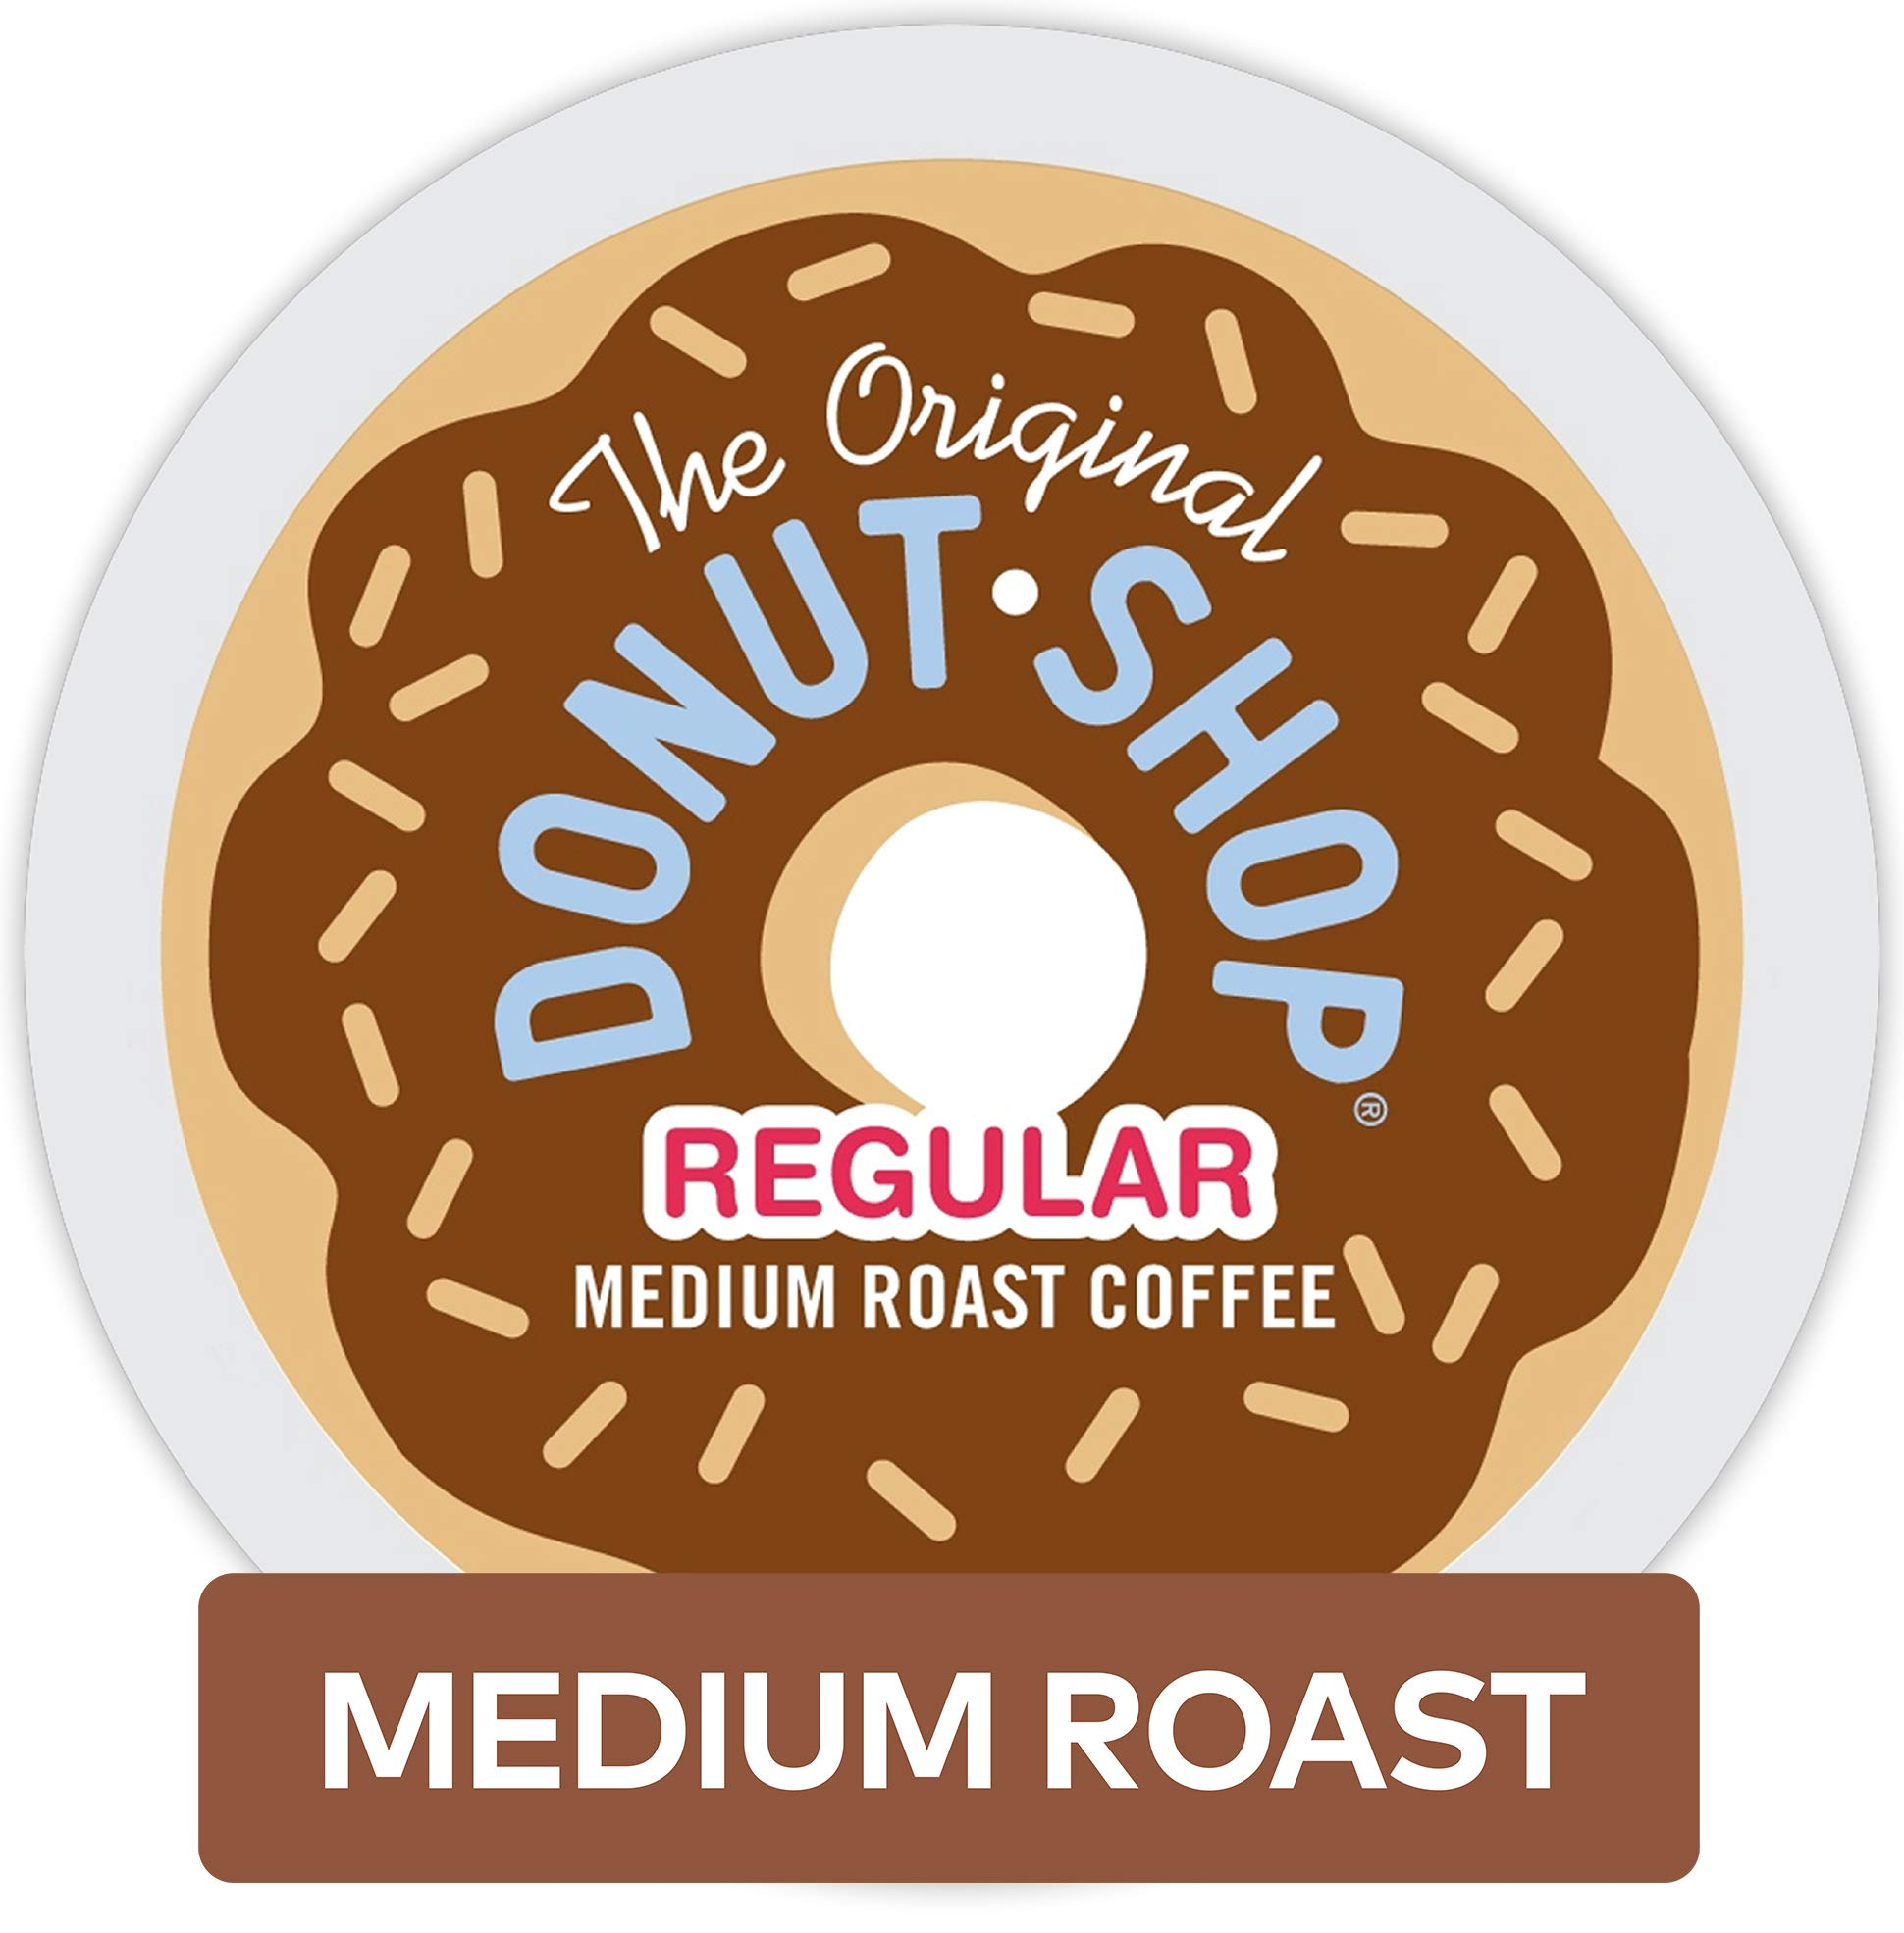 The Original Donut Shop Coffee, Regular Medium Roast, K-Cup Portion Count for Keurig Brewers 24-Count (Pack of 4) (96 Count)